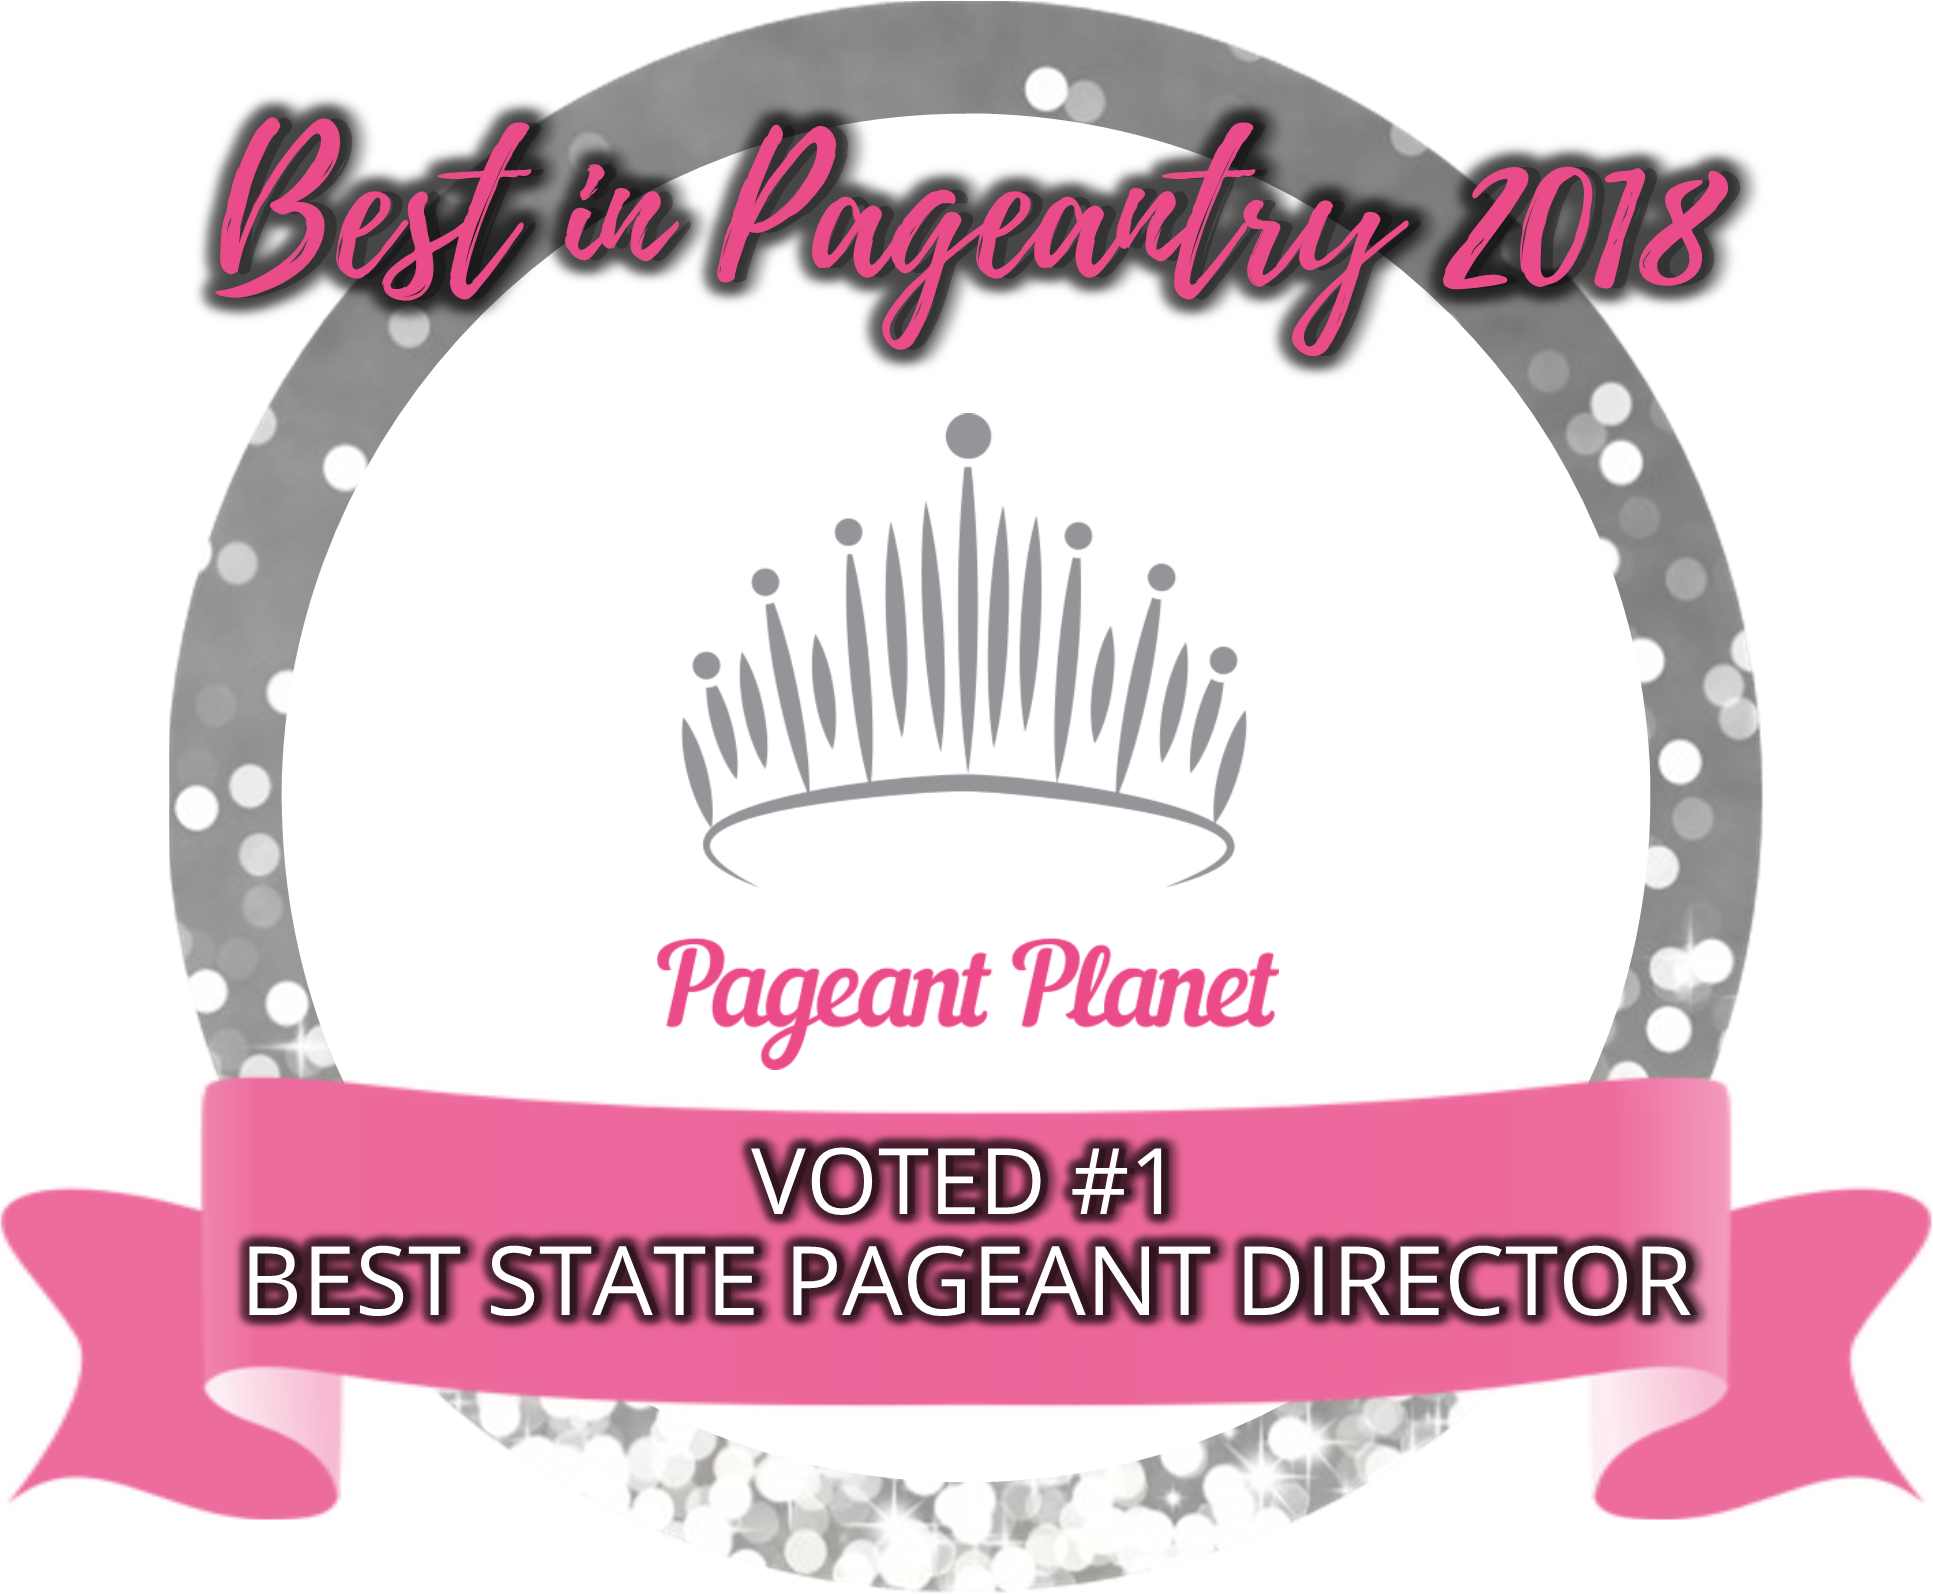 #1 Best State Pageant Director of 2018